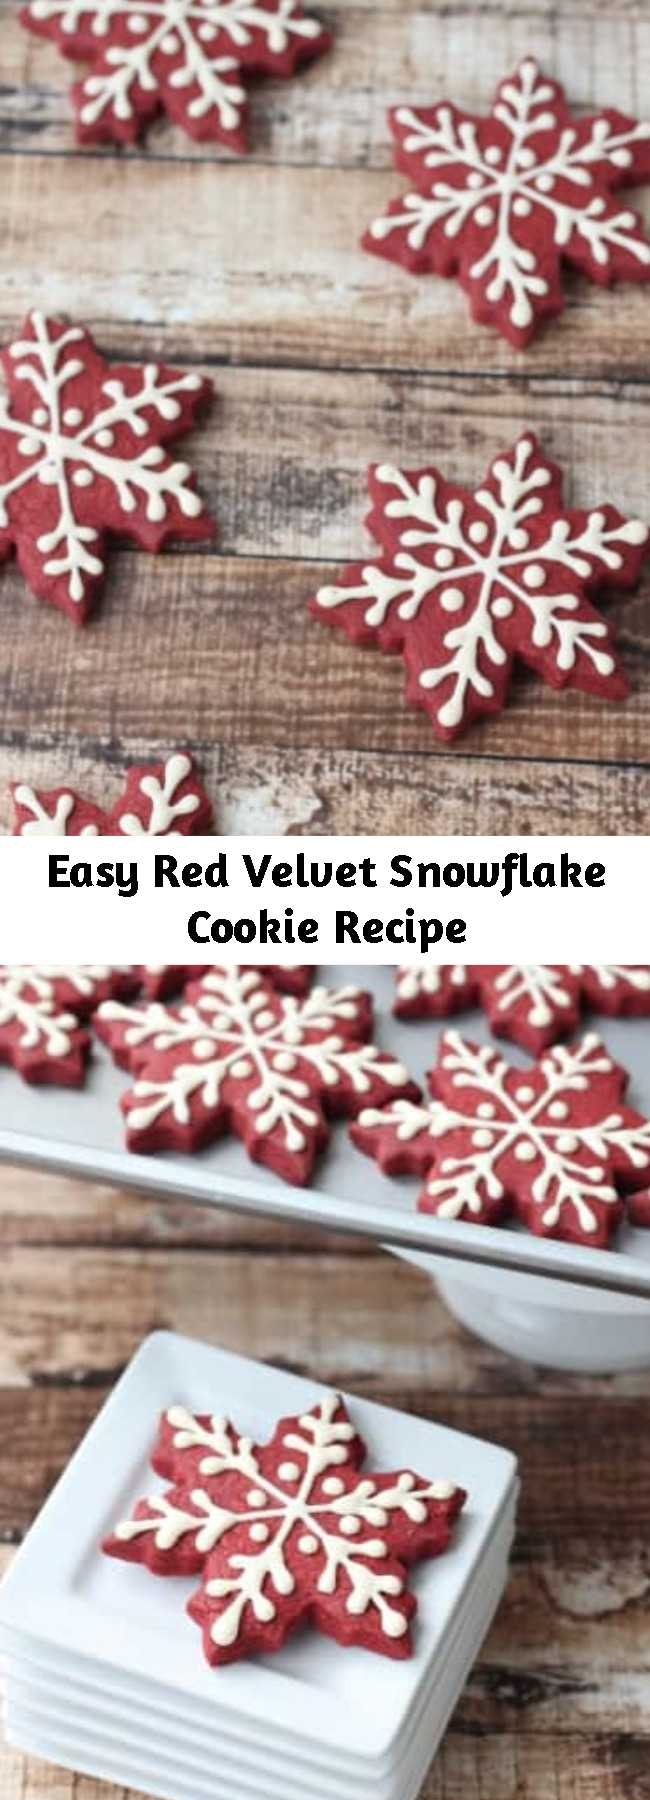 Easy Red Velvet Snowflake Cookie Recipe - These Red Velvet Snowflake Cookies are just perfect to make as soon as the cool weather hits!